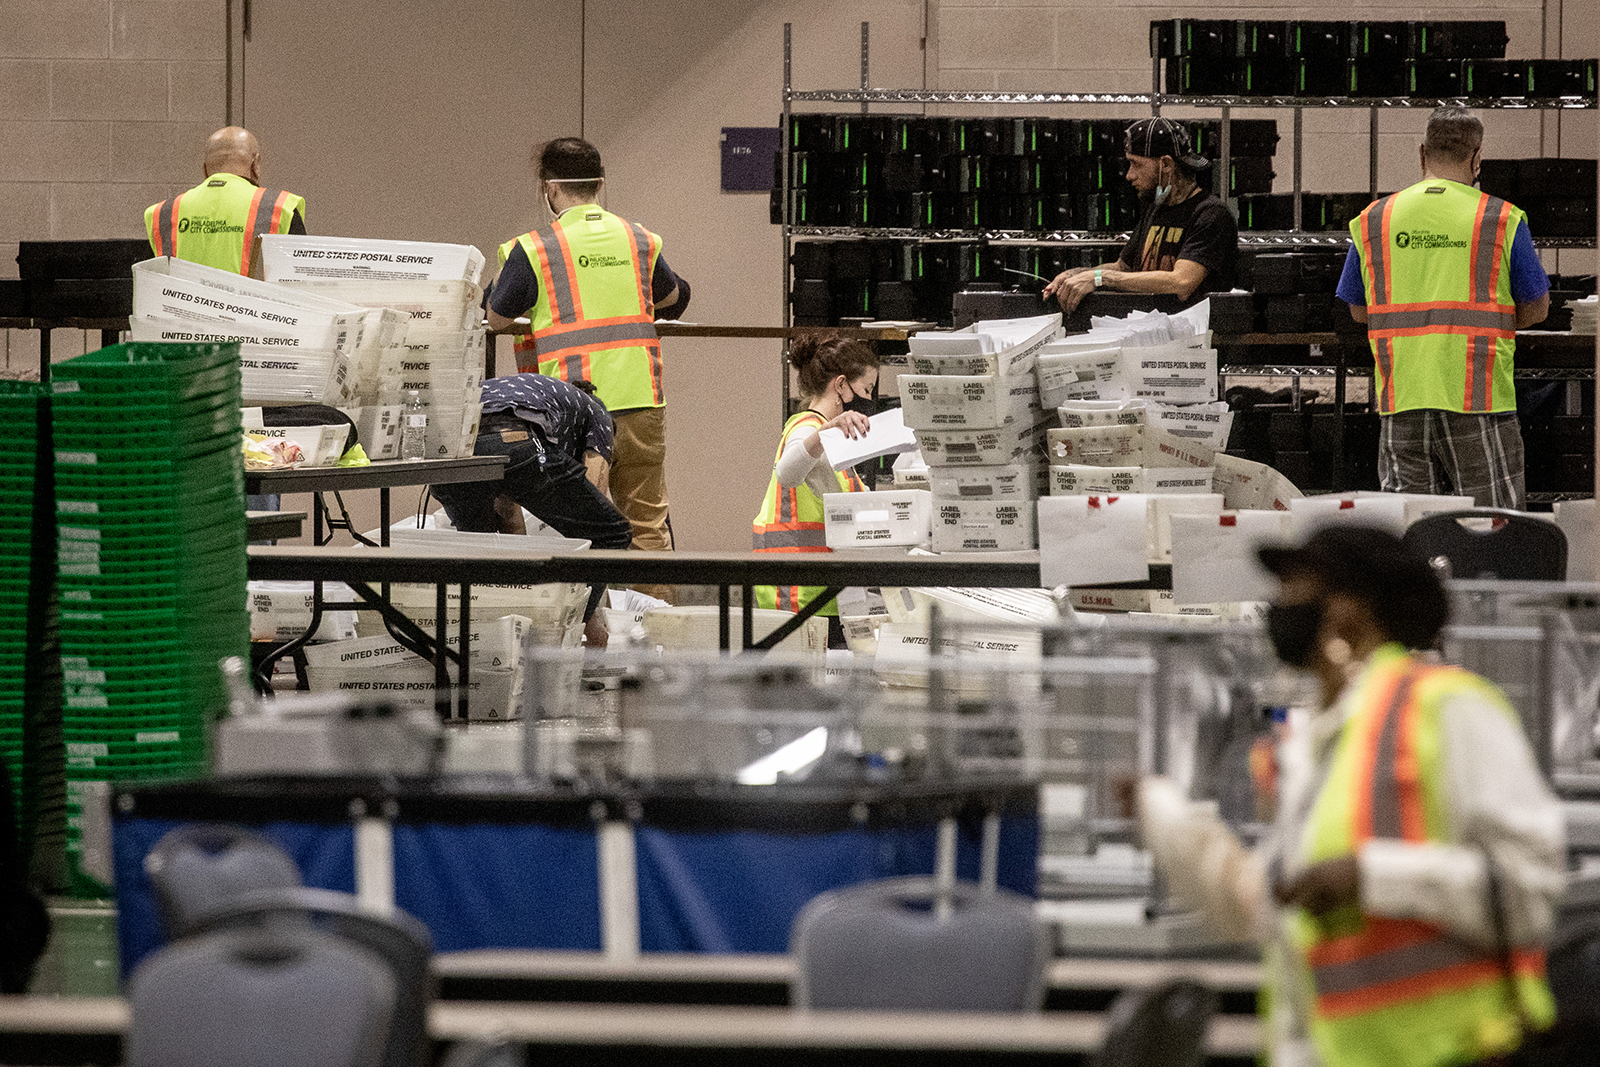 Ballots are counted at the Philadelphia Convention center on November 6, in Philadelphia, Pennsylvania.